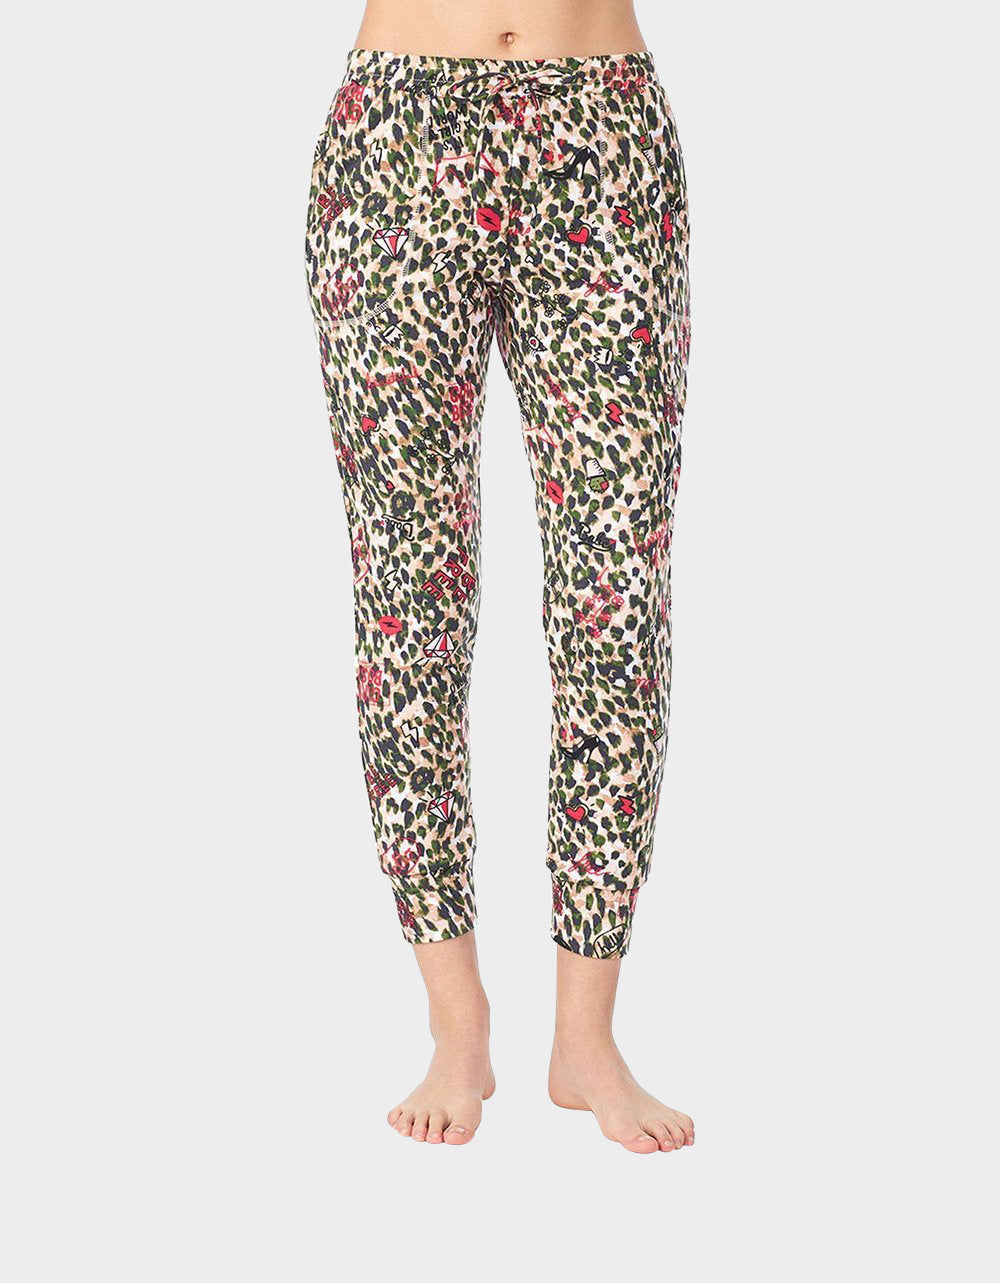 GIRL POWER BRUSHED TERRY JOGGER CAMOUFLAGE - APPAREL - Betsey Johnson